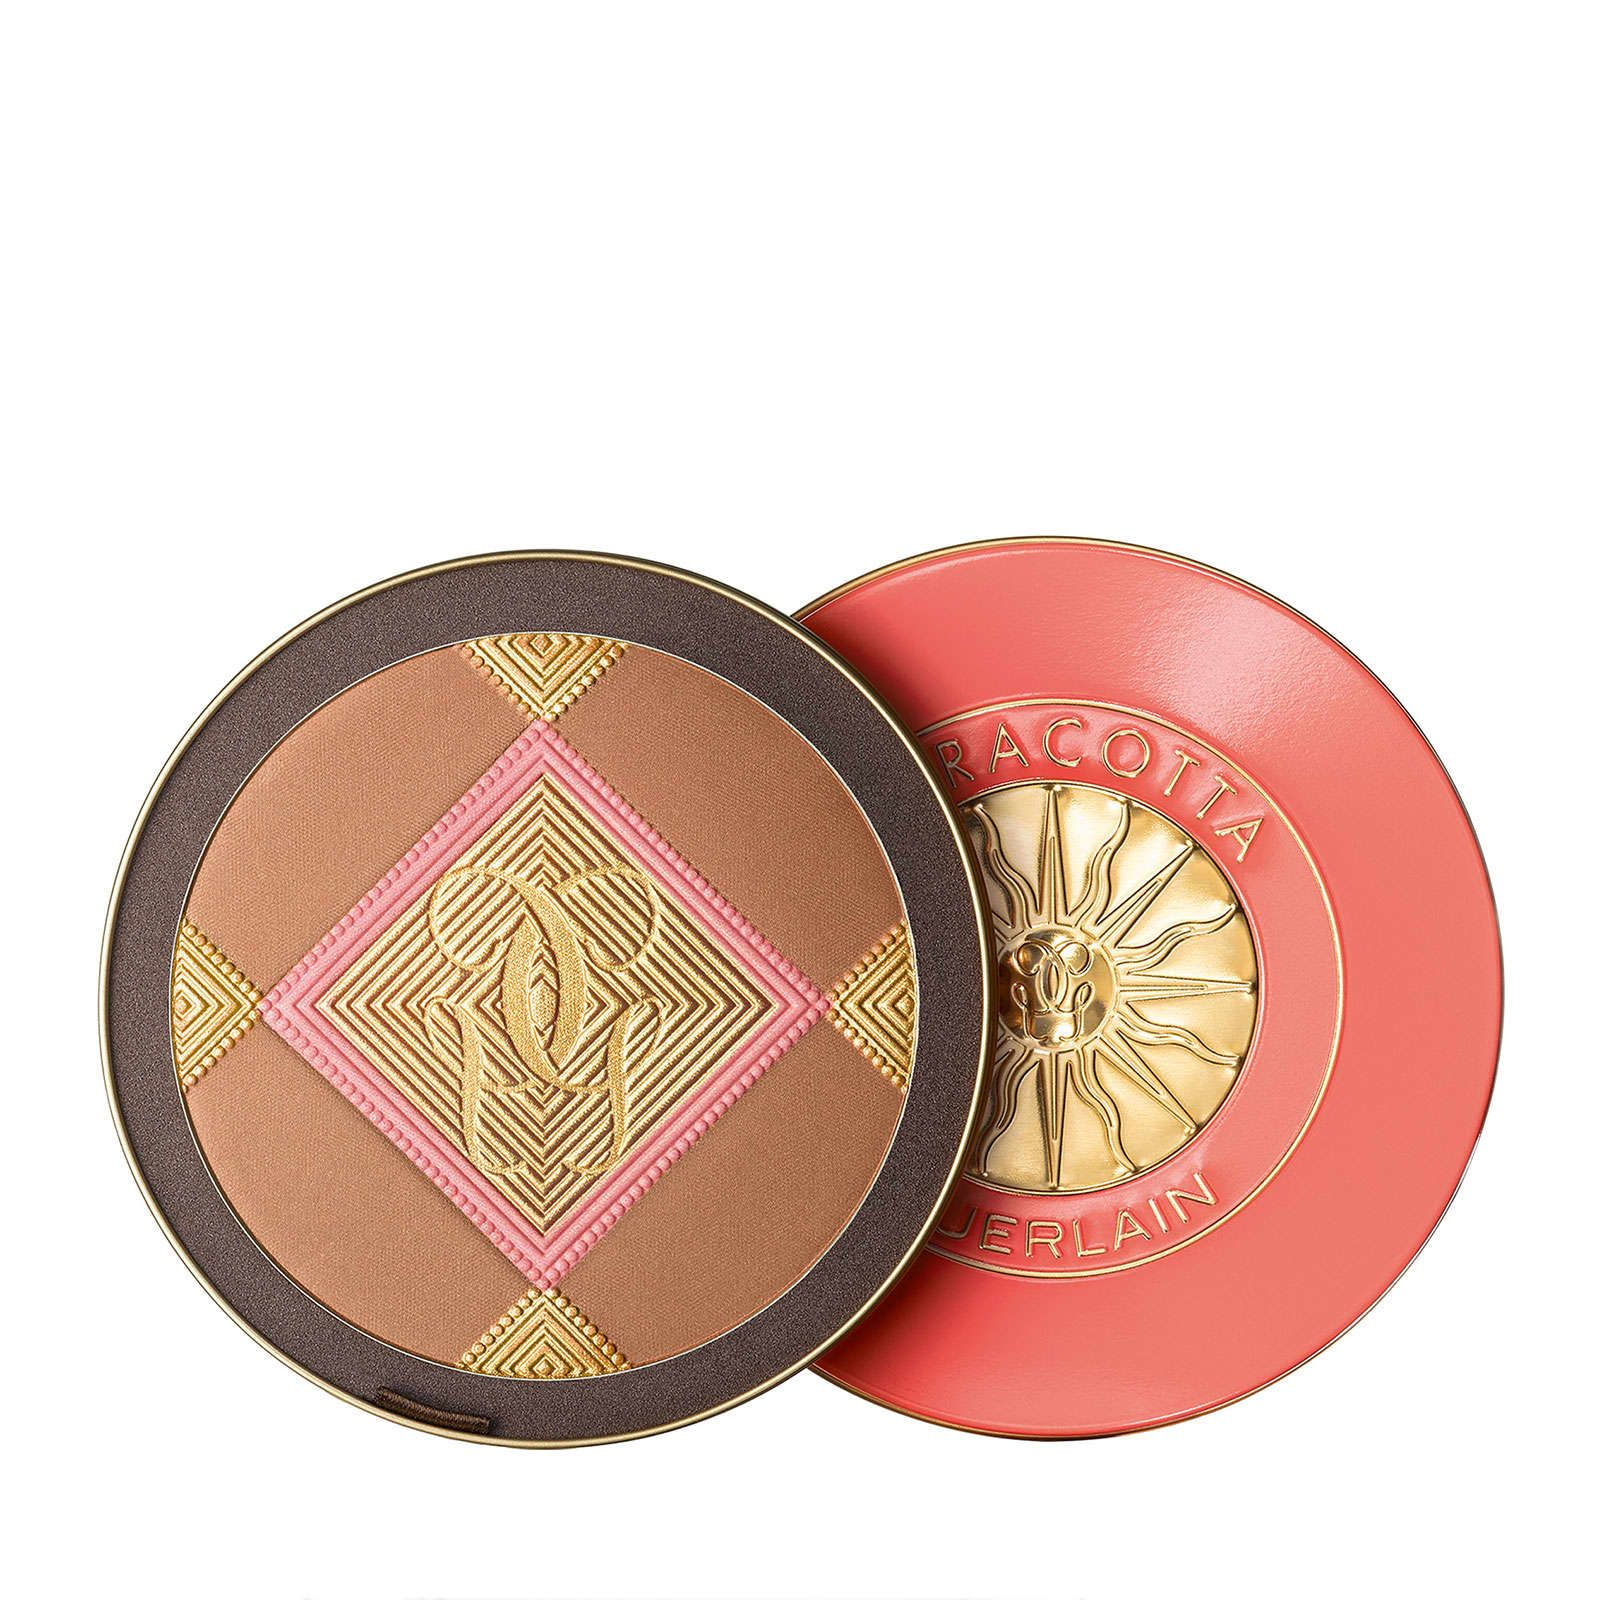 GUERLAIN Terracotta After Summer Giant Powder Sahara 10g ...